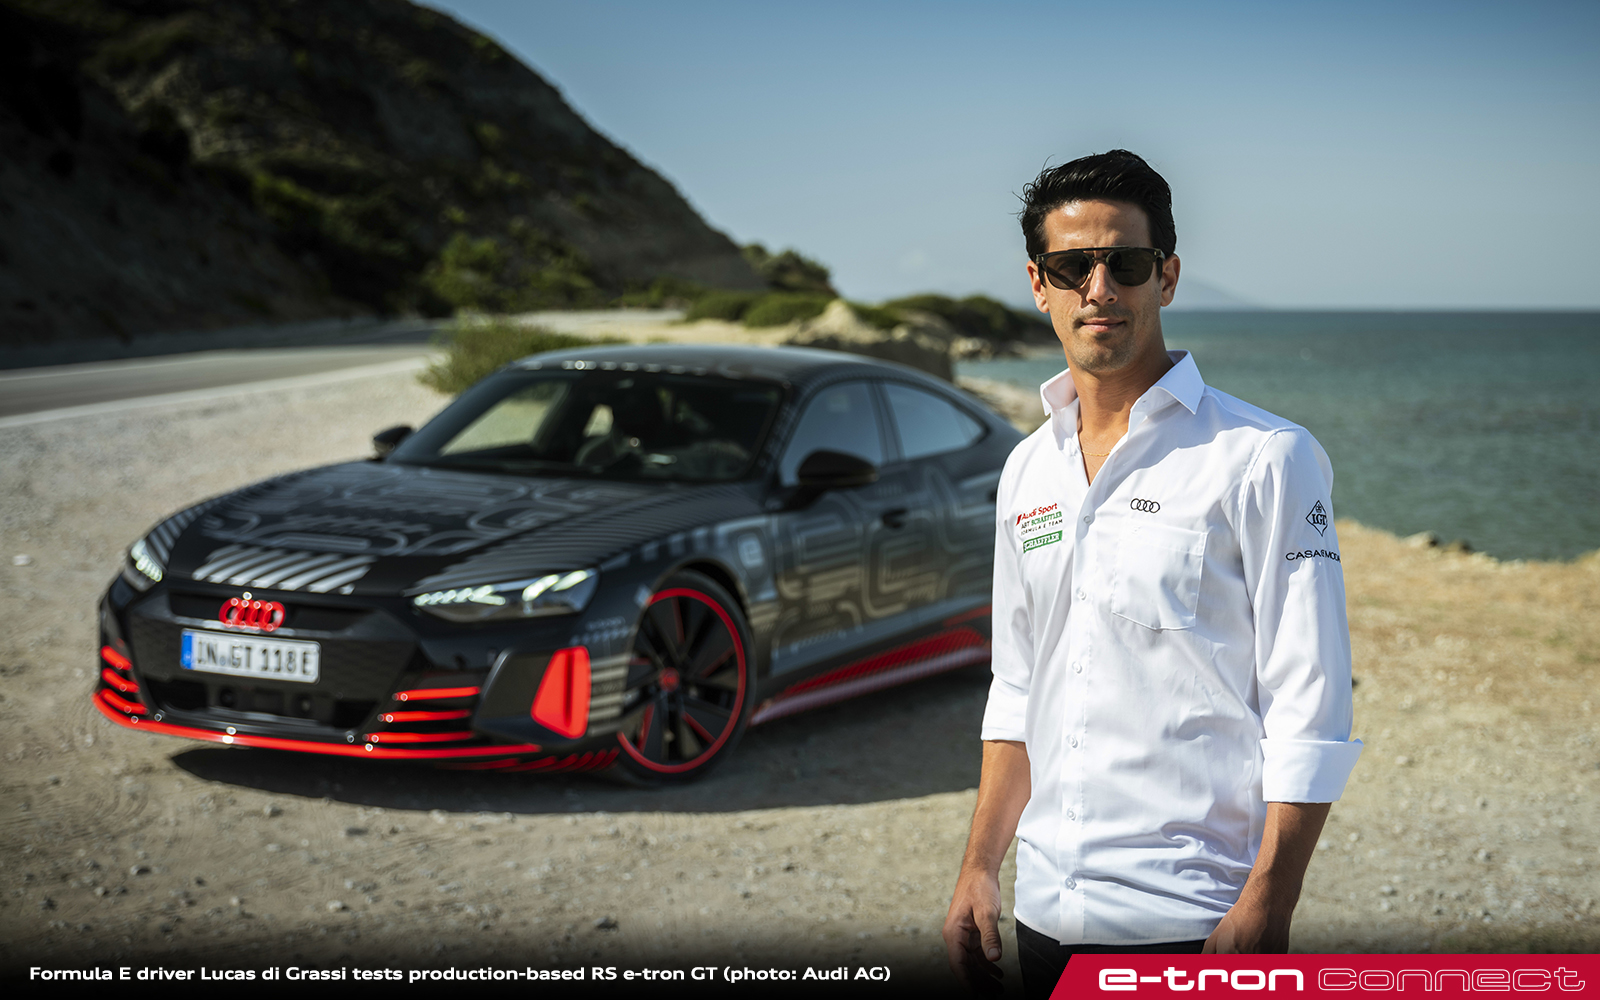 The Moment of Truth: Formula E Driver Lucas di Grassi Tests Production-Based RS e-tron GT